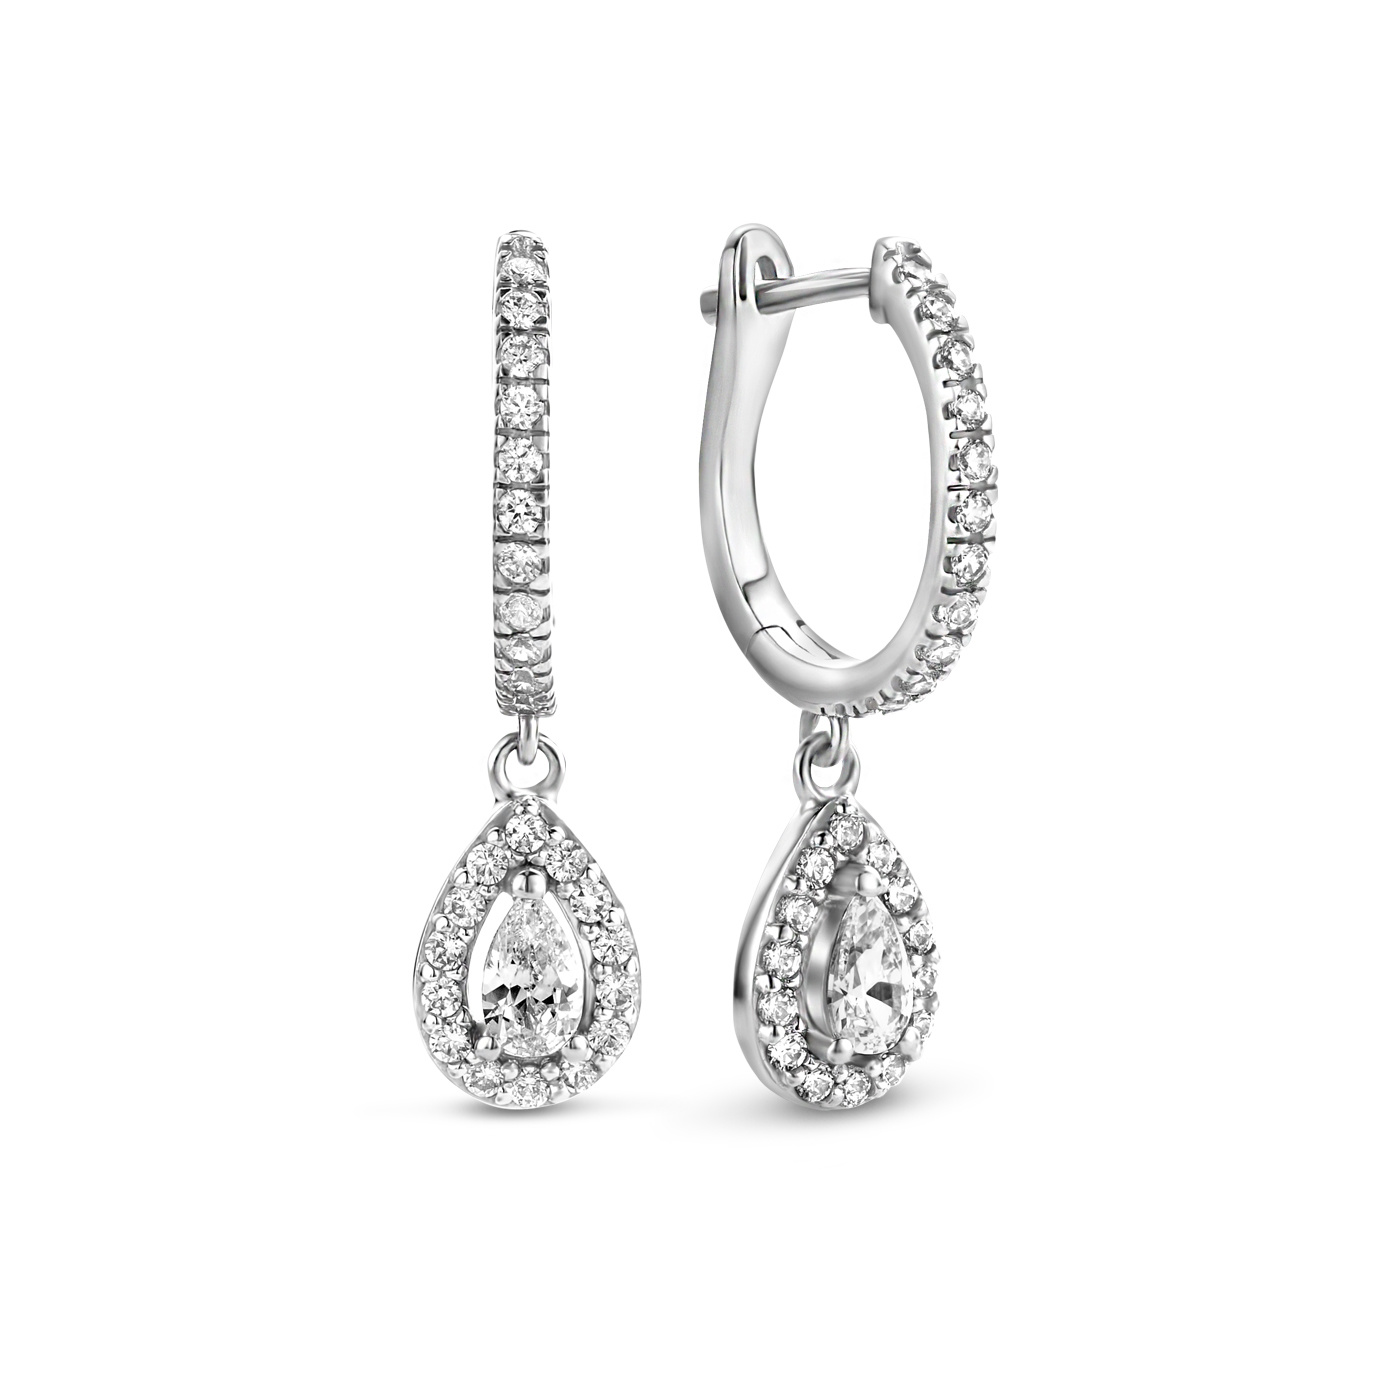 Parte di Me Ponte Vecchio Pitti 925 sterling silver drop earrings with zirconia